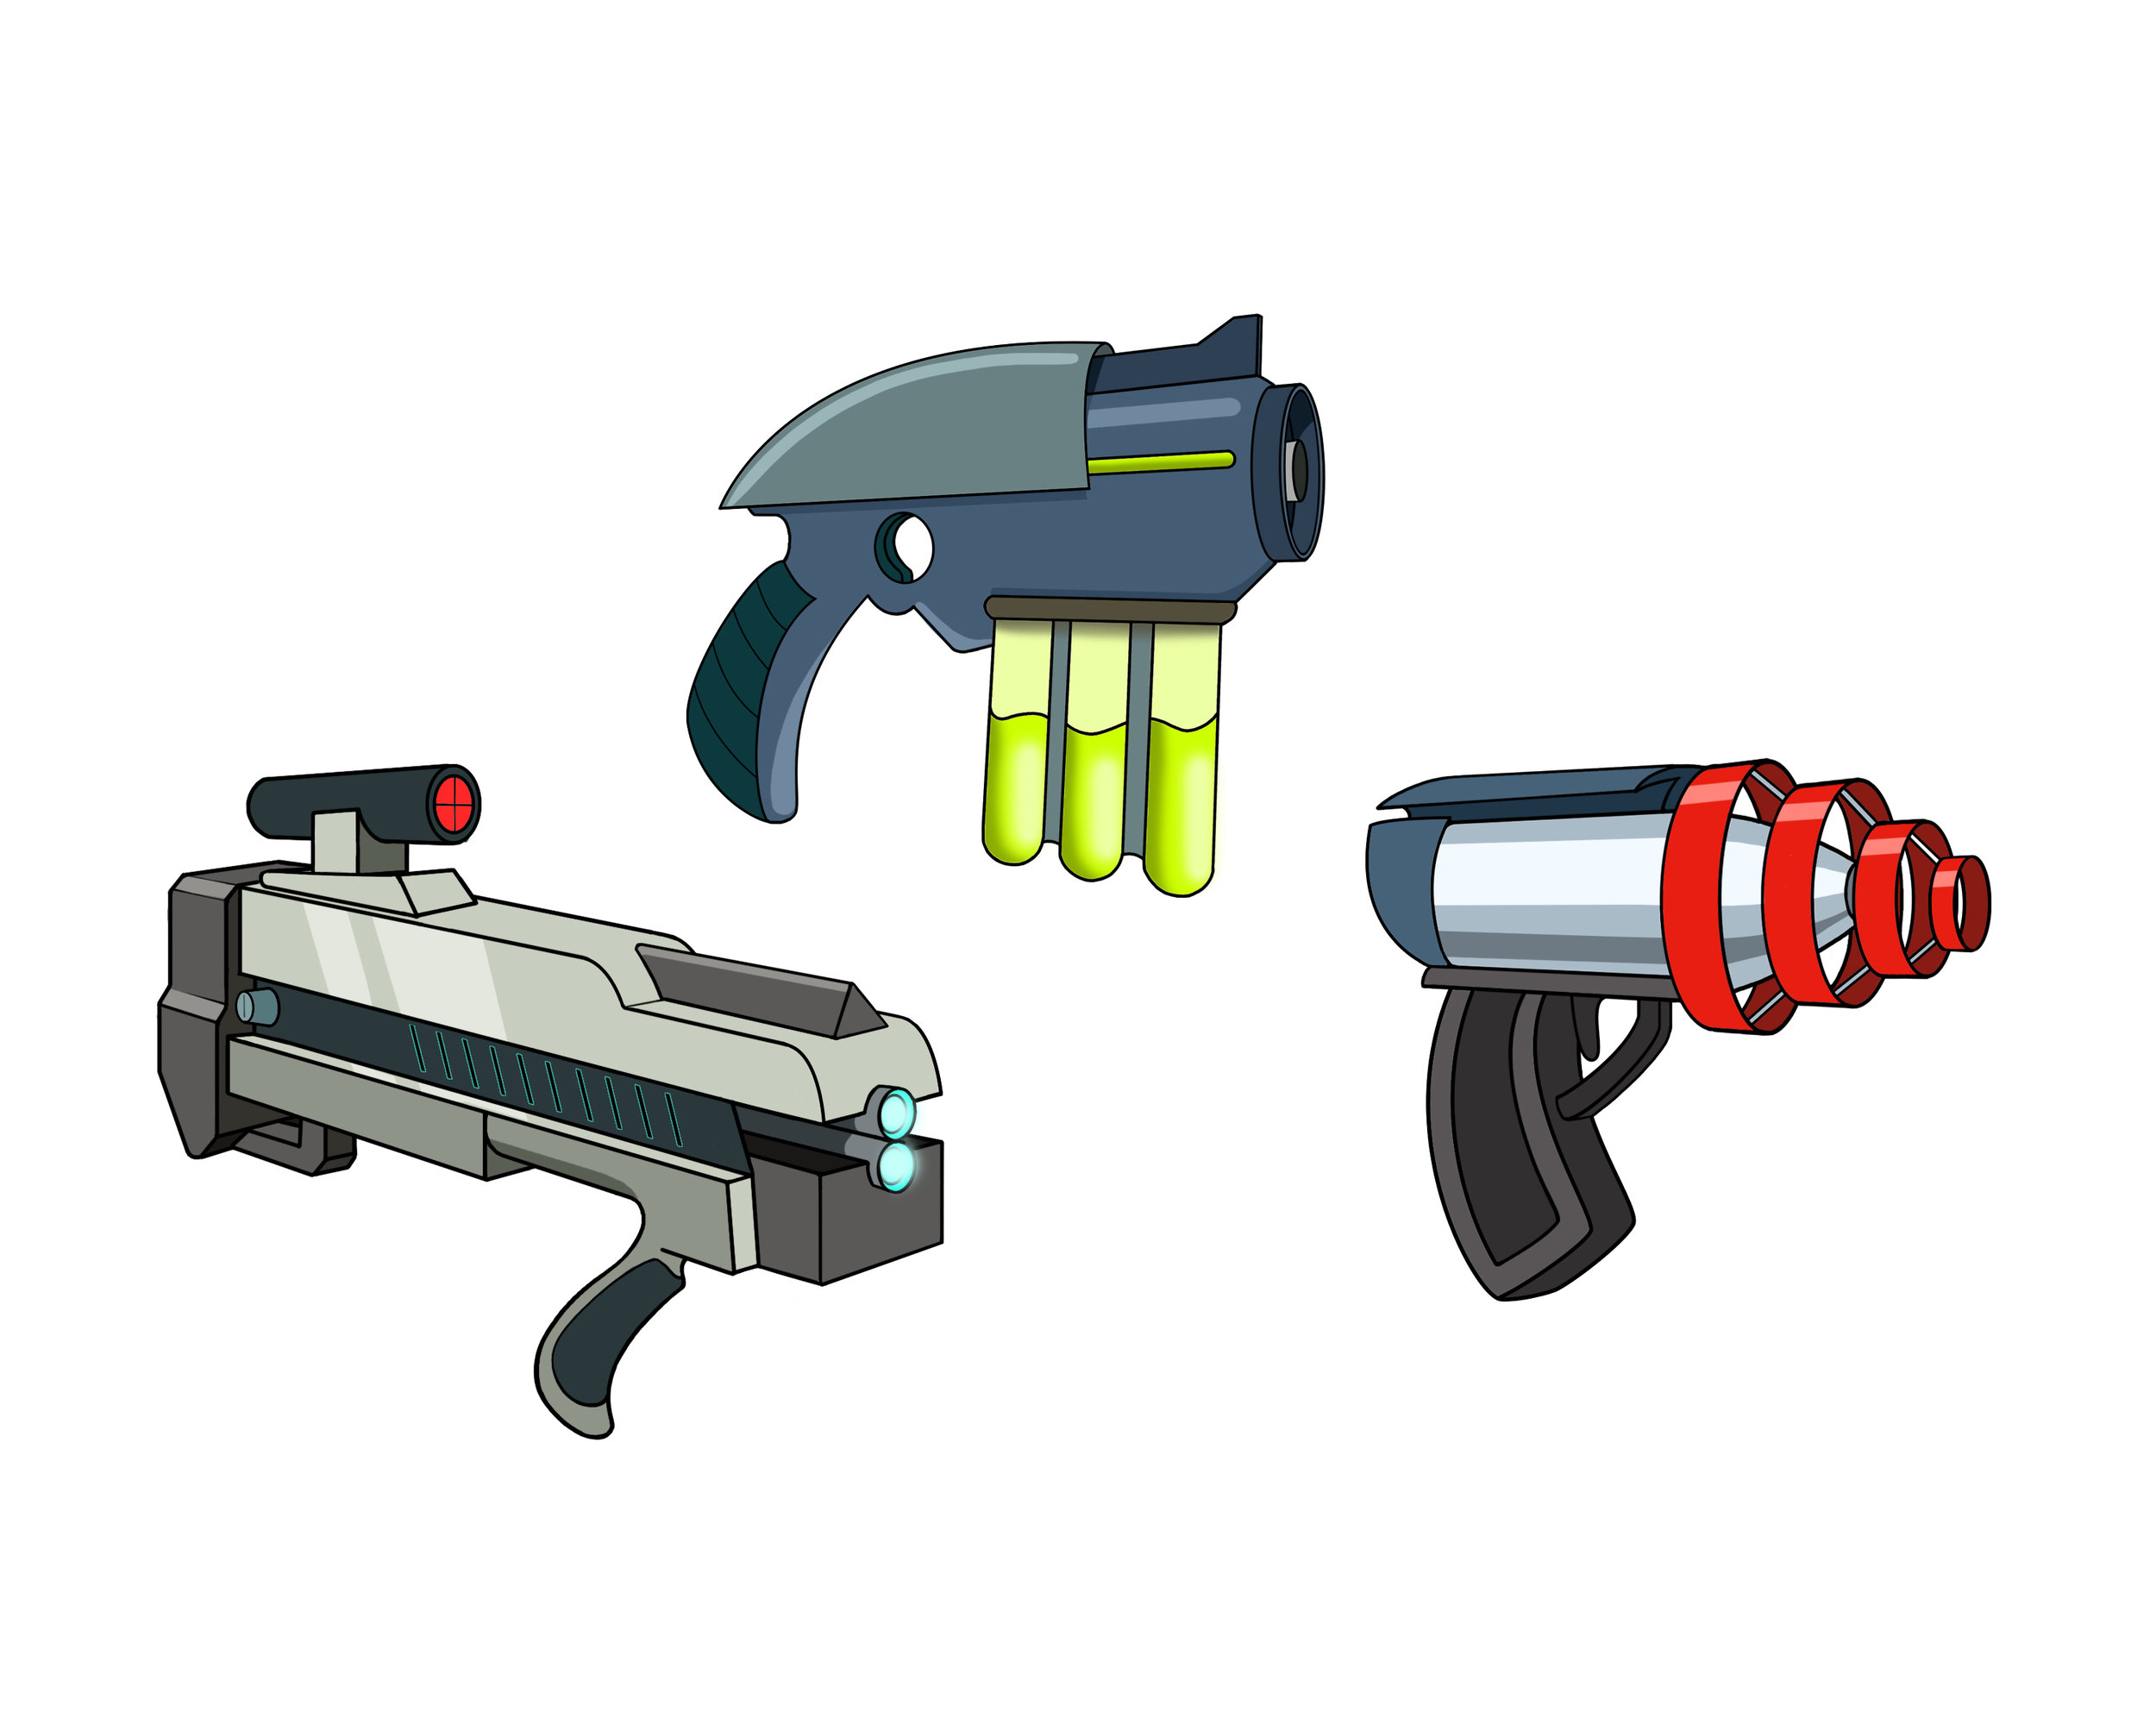 rayguns_color.jpg